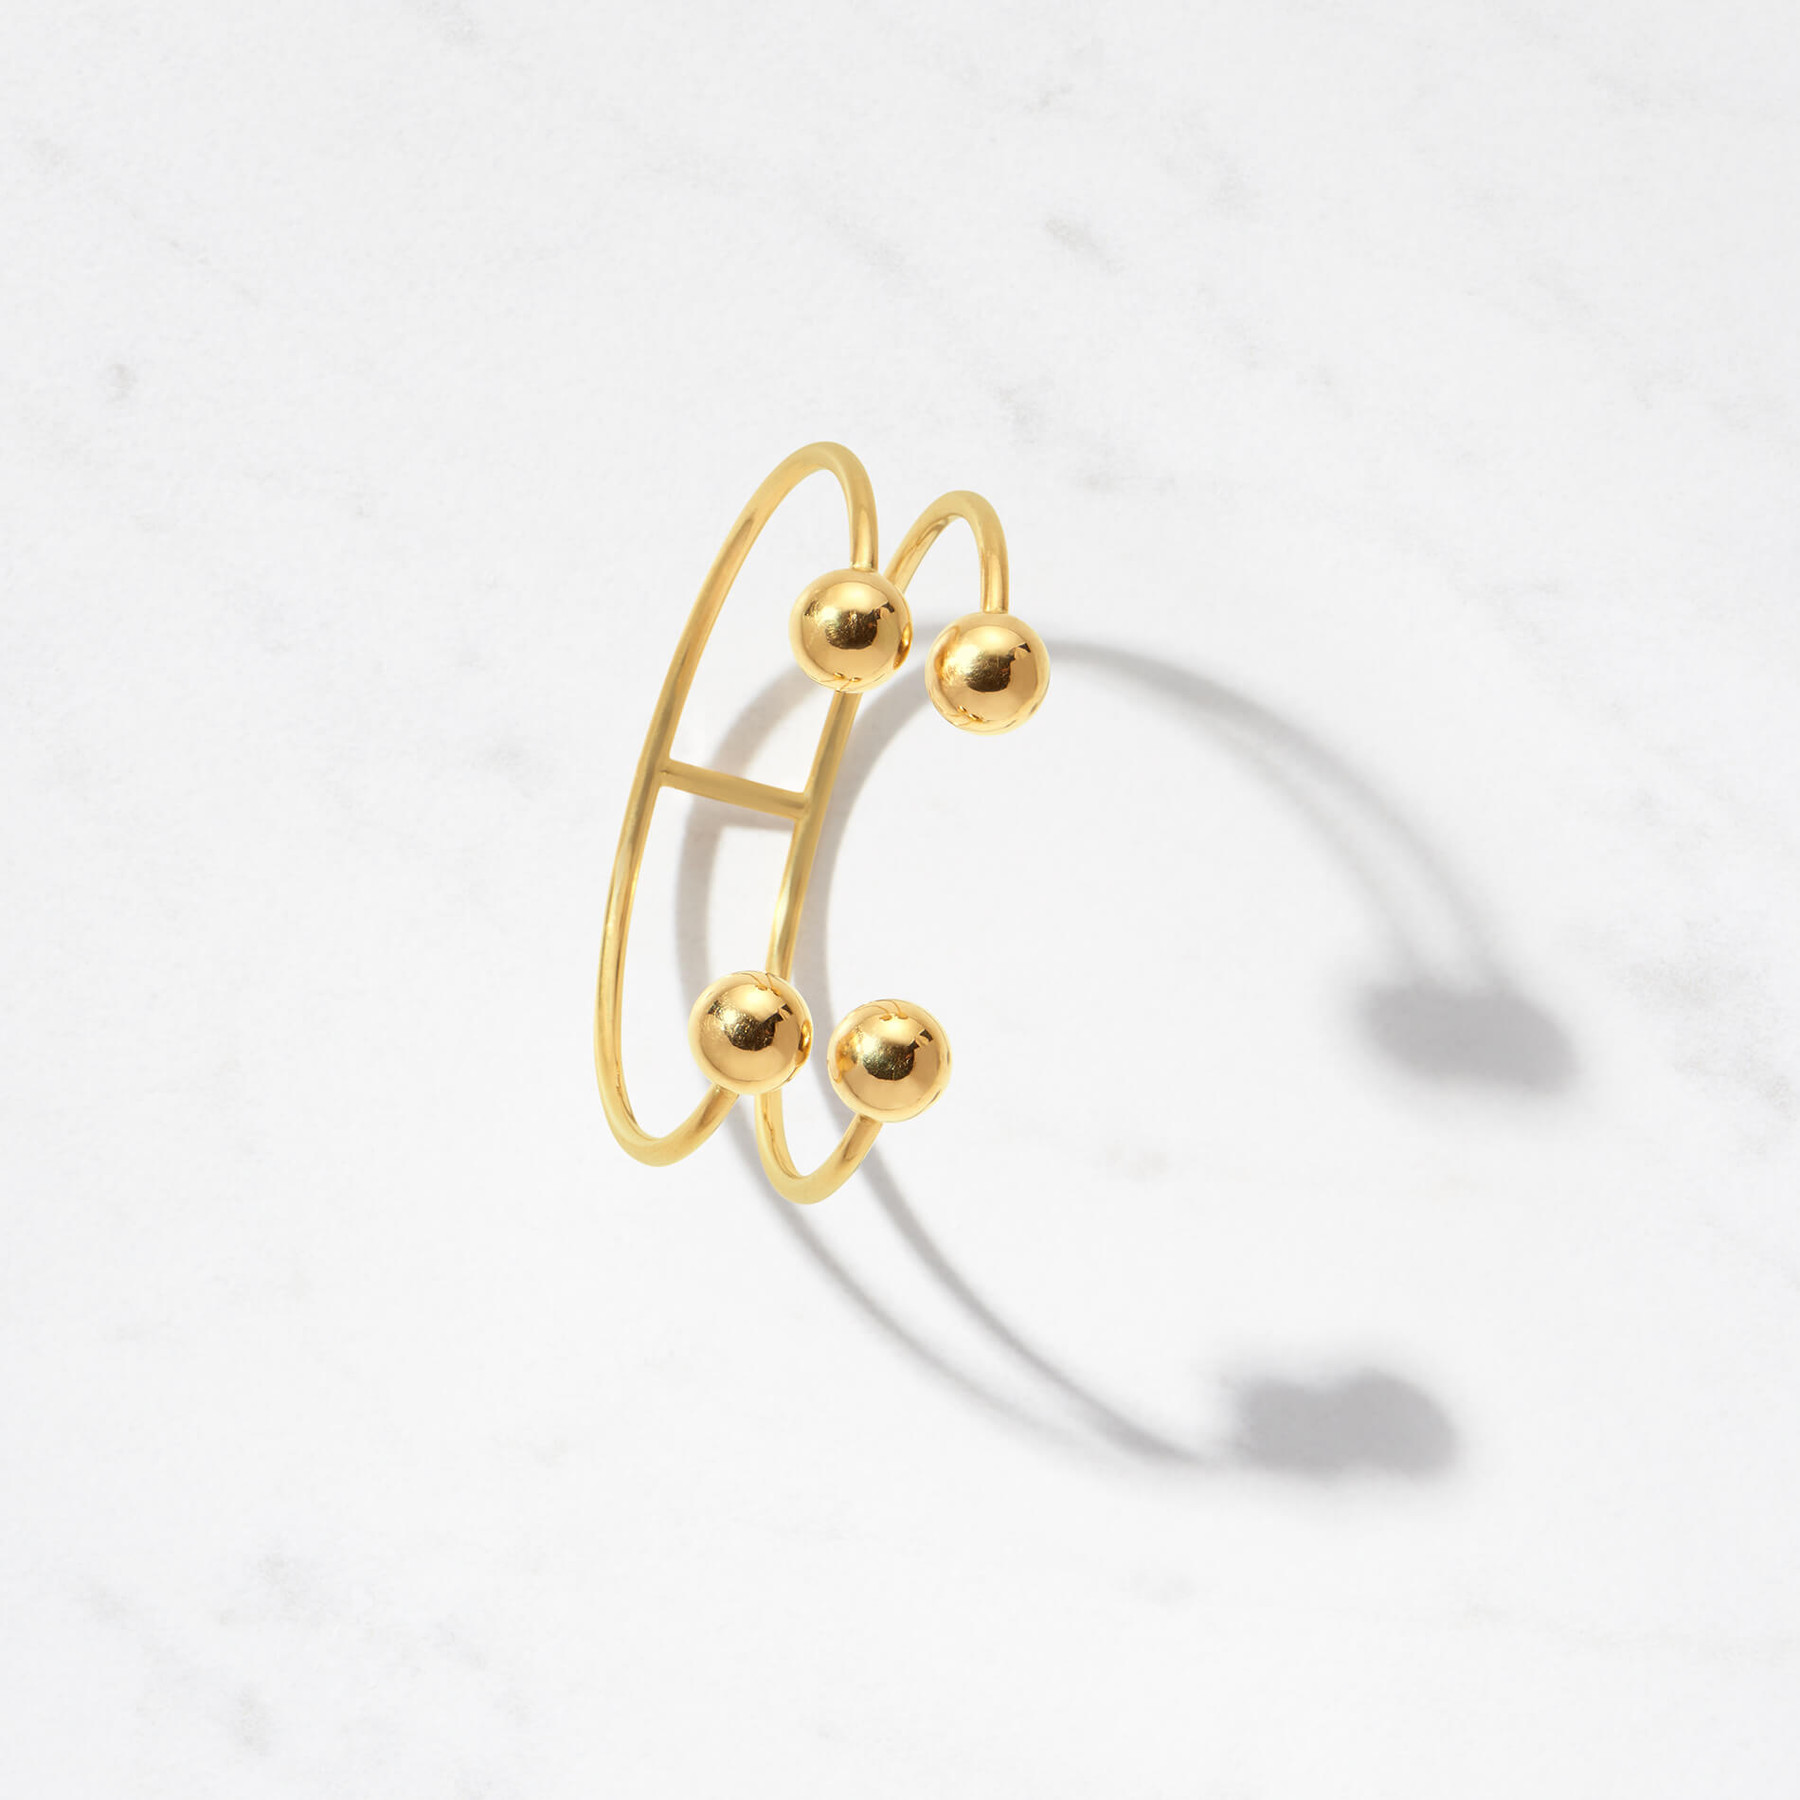 Golden orbs align two perfectly formed arcs on our Astra II Cuff in 22 karat polished gold with a gold weight of approximately 32 grams.